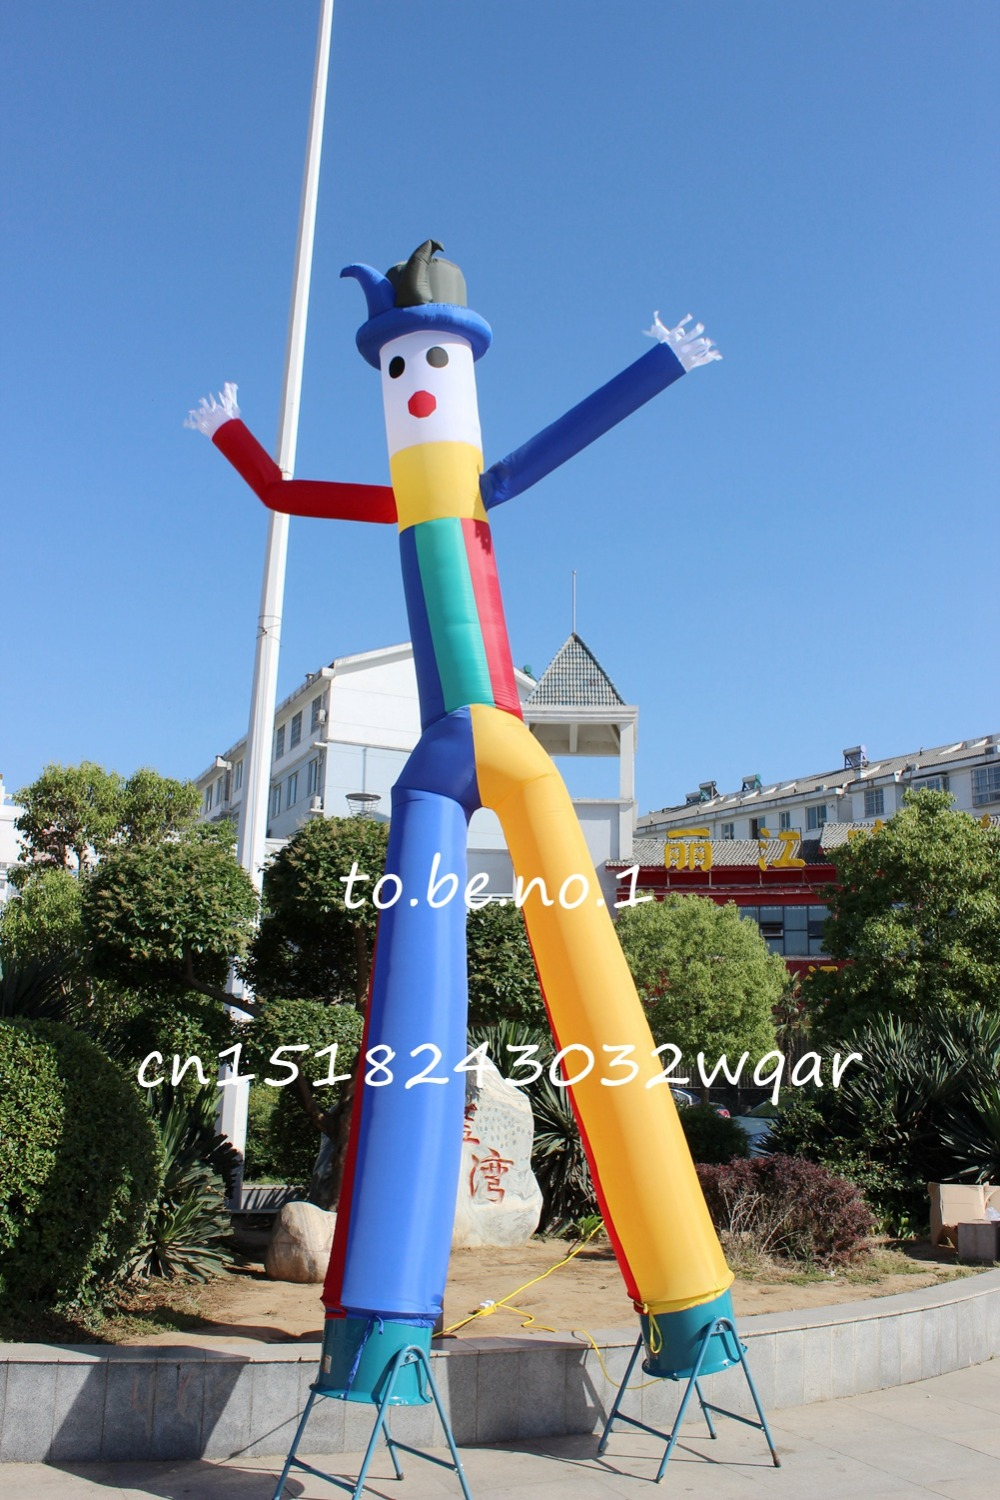 Inflatable Toys 6M 20FT Inflatable Tube Sky Dancer Air Dancer NO blower Inflatable Toys Shop ads sign S1001 цена и фото